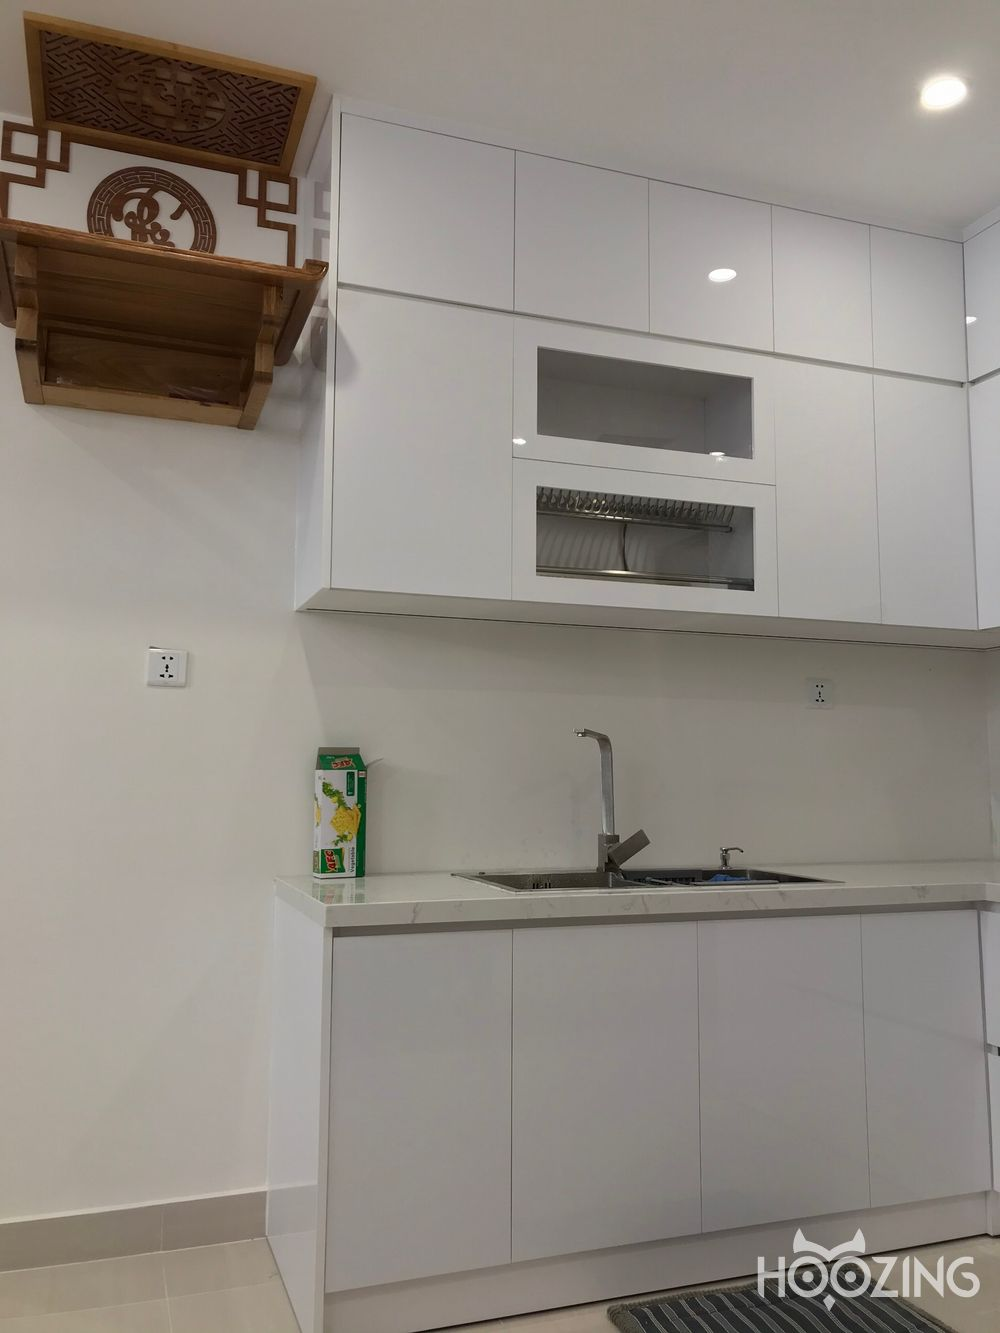 Vinhomes Grand Park Apartment 2 Bedrooms for Sale - Quite Neighborhood View